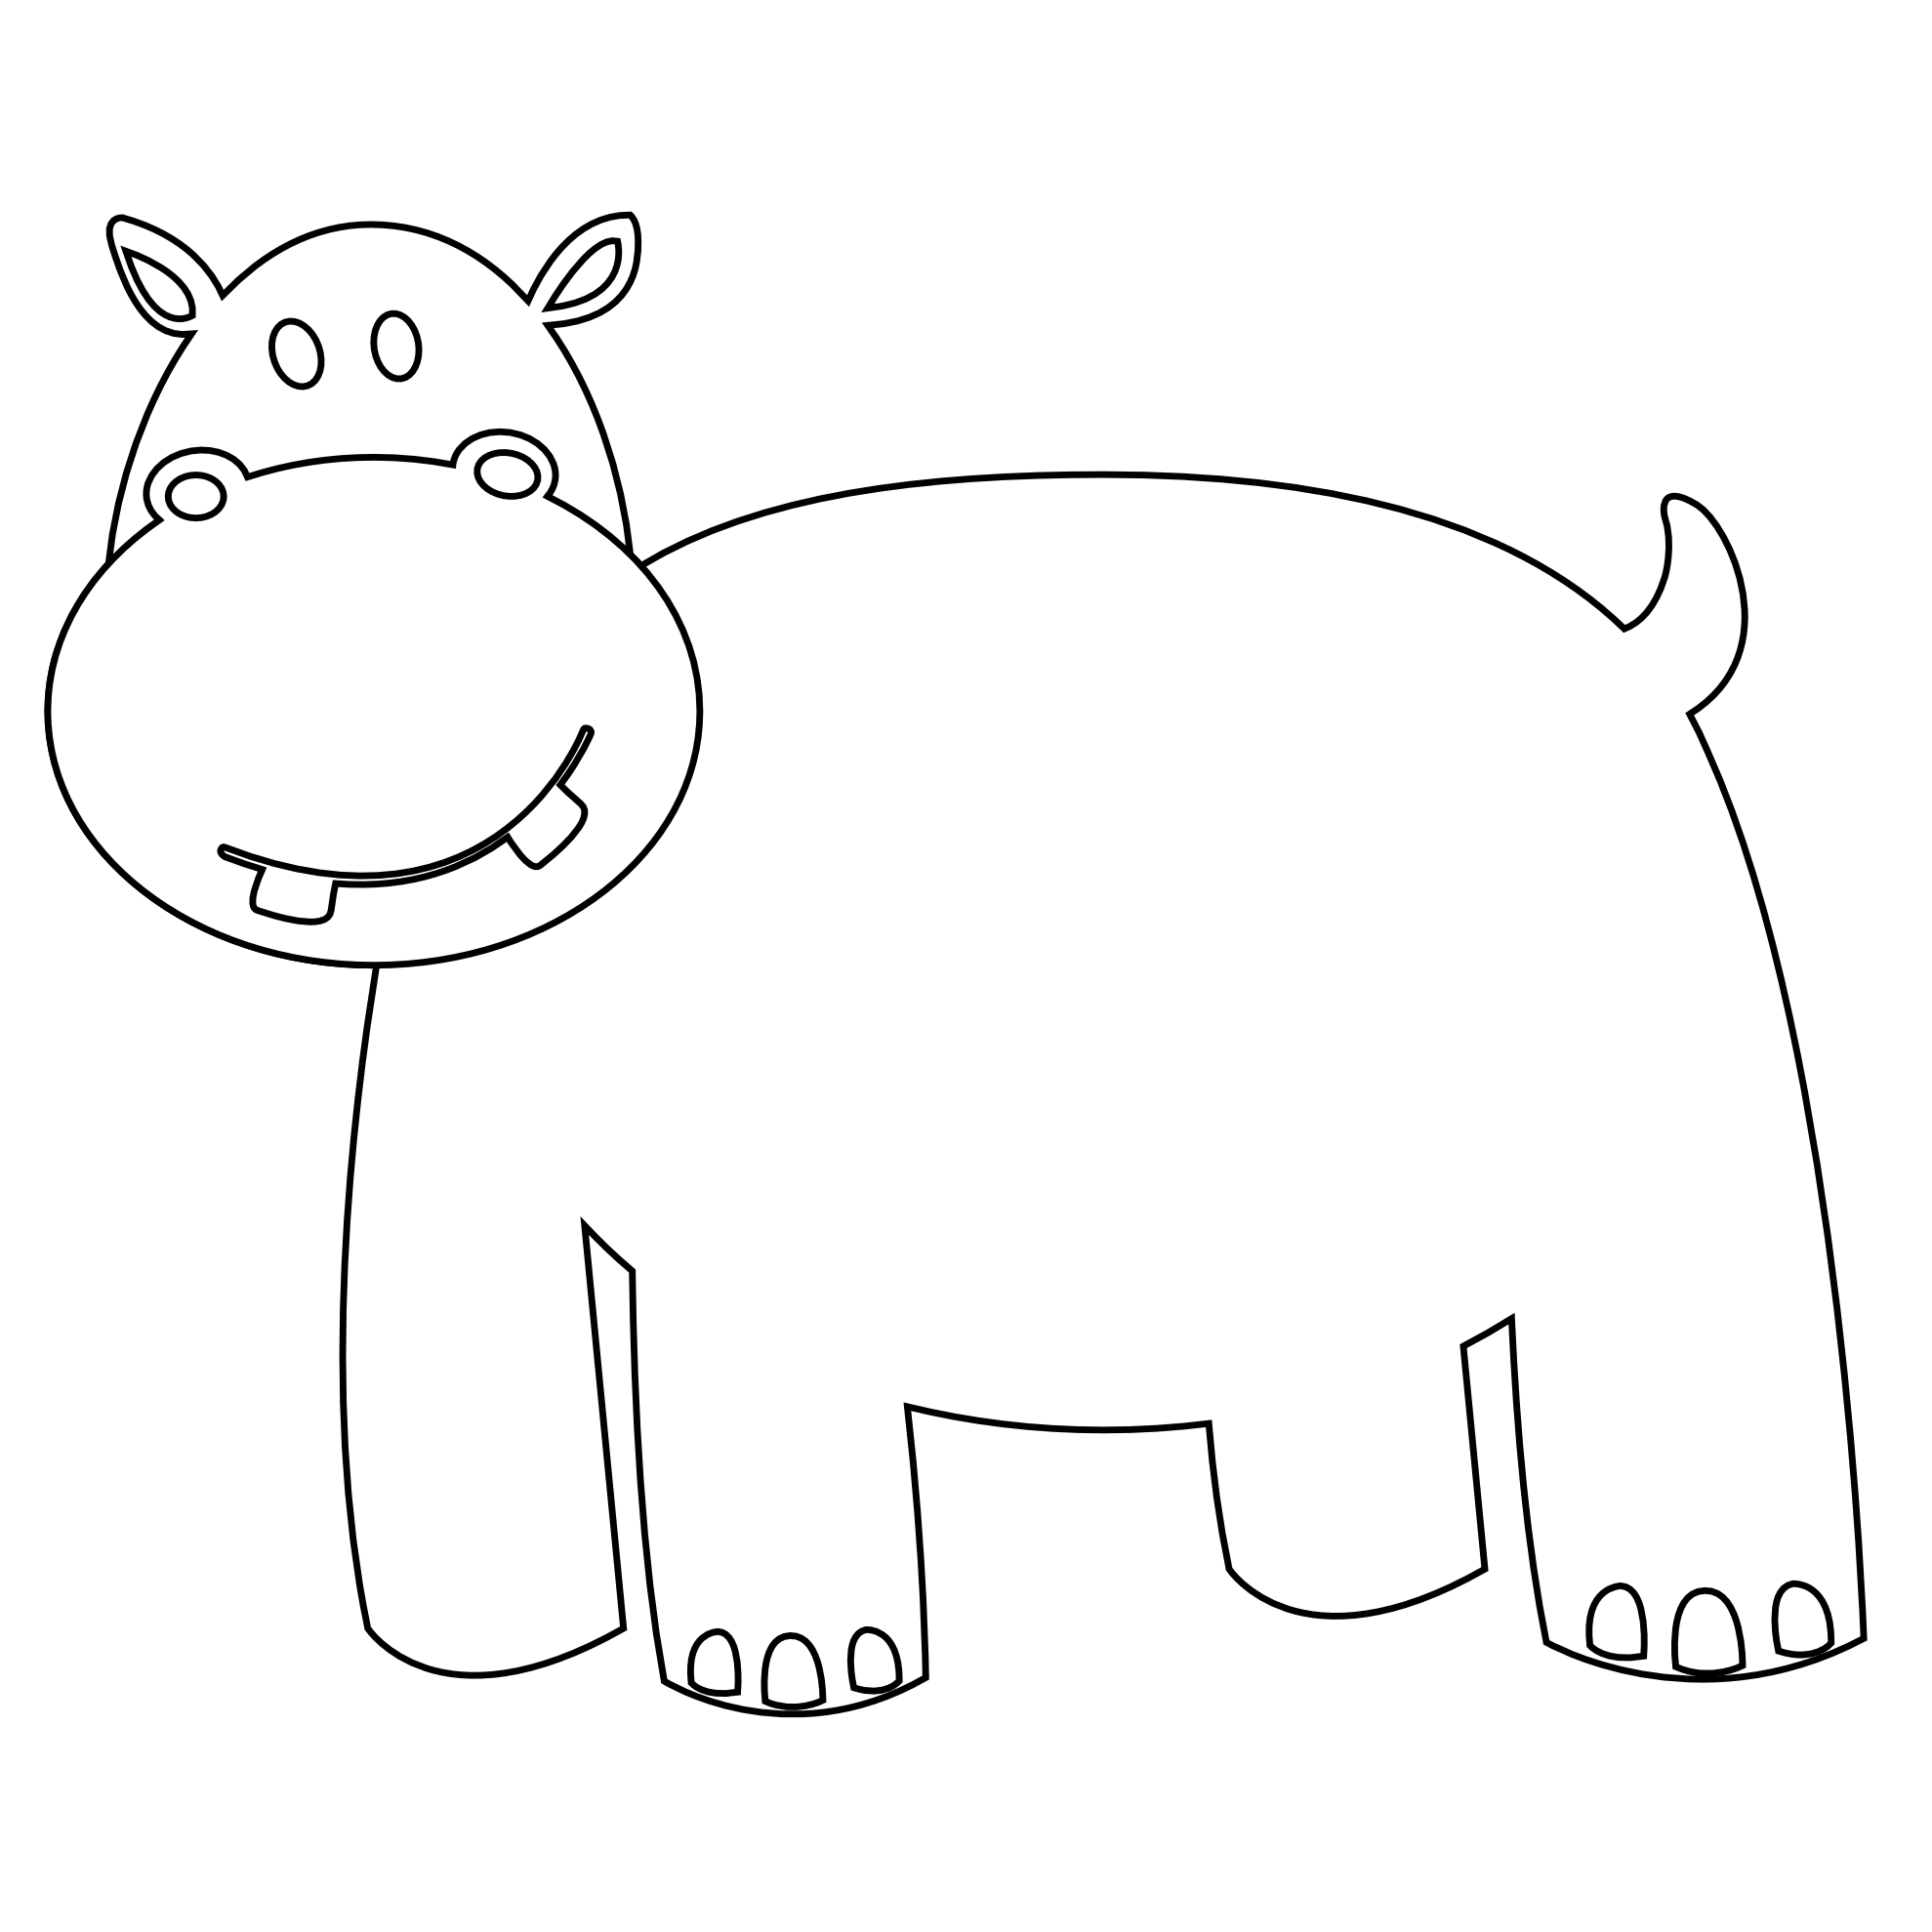 Line Drawings Of Animals Free Download : Line drawing of animals clipart best